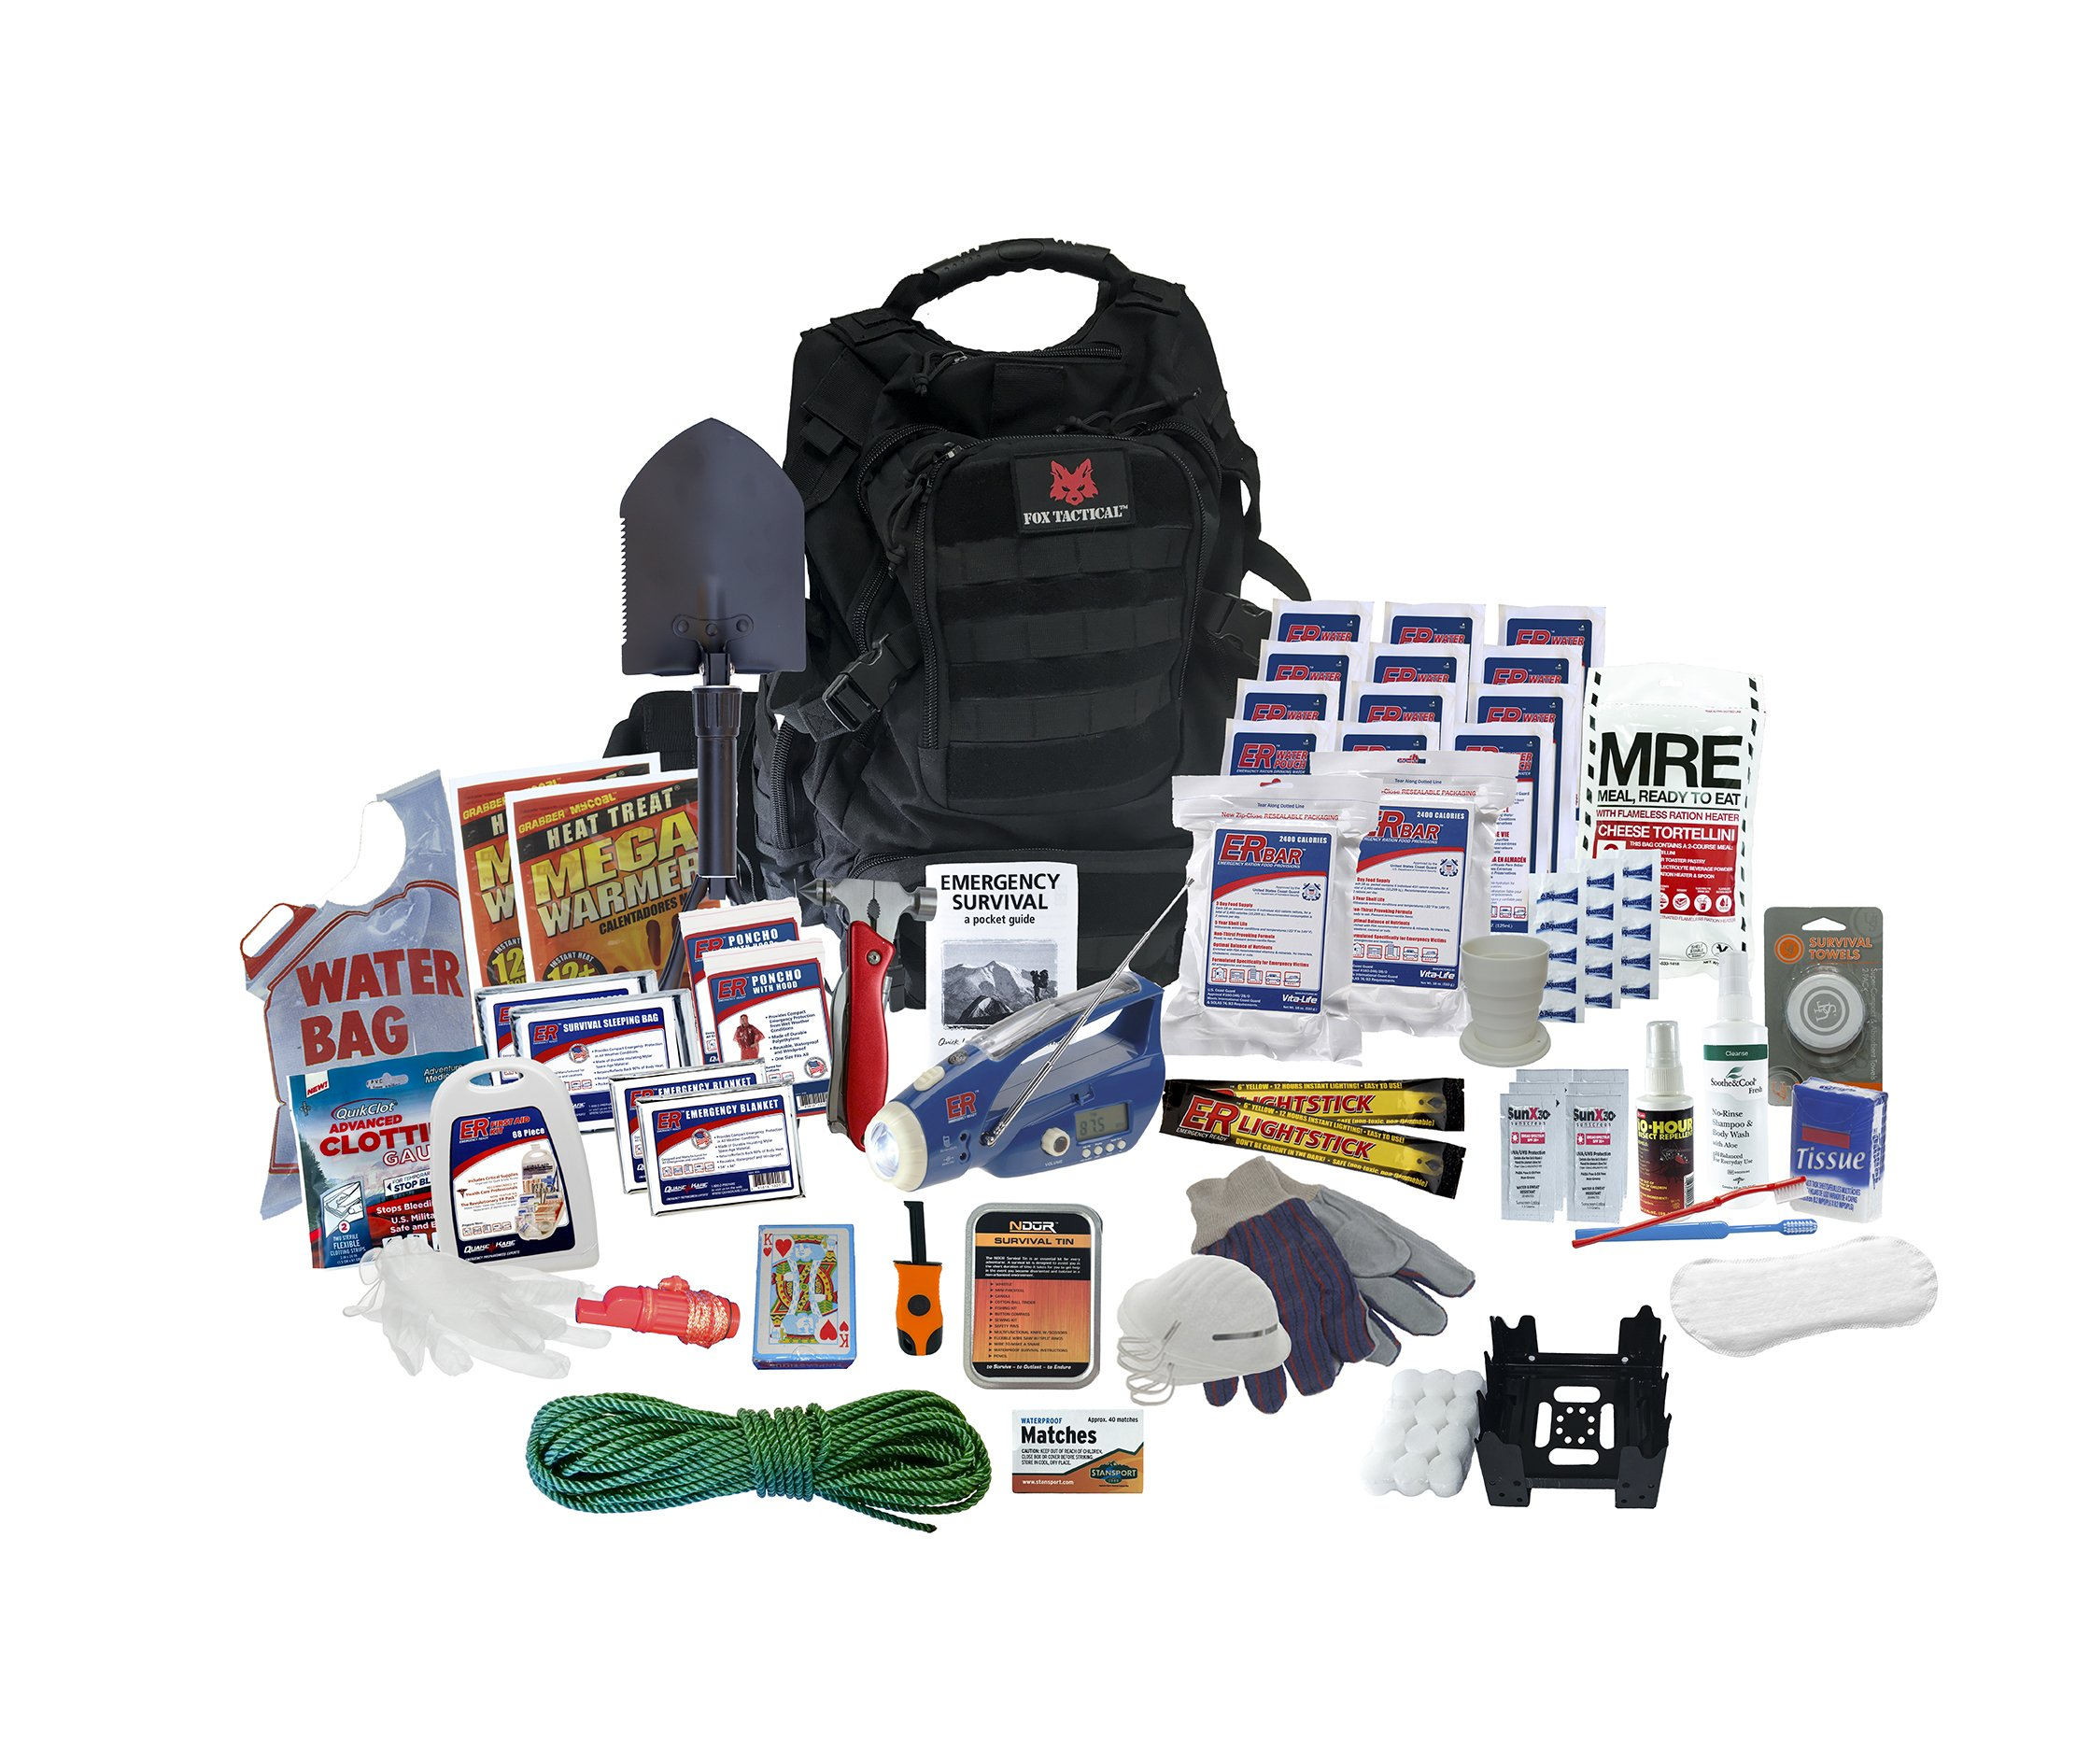 ER Emergency Ready SKBOB Ultimate bug-out Bag by ER Emergency Ready